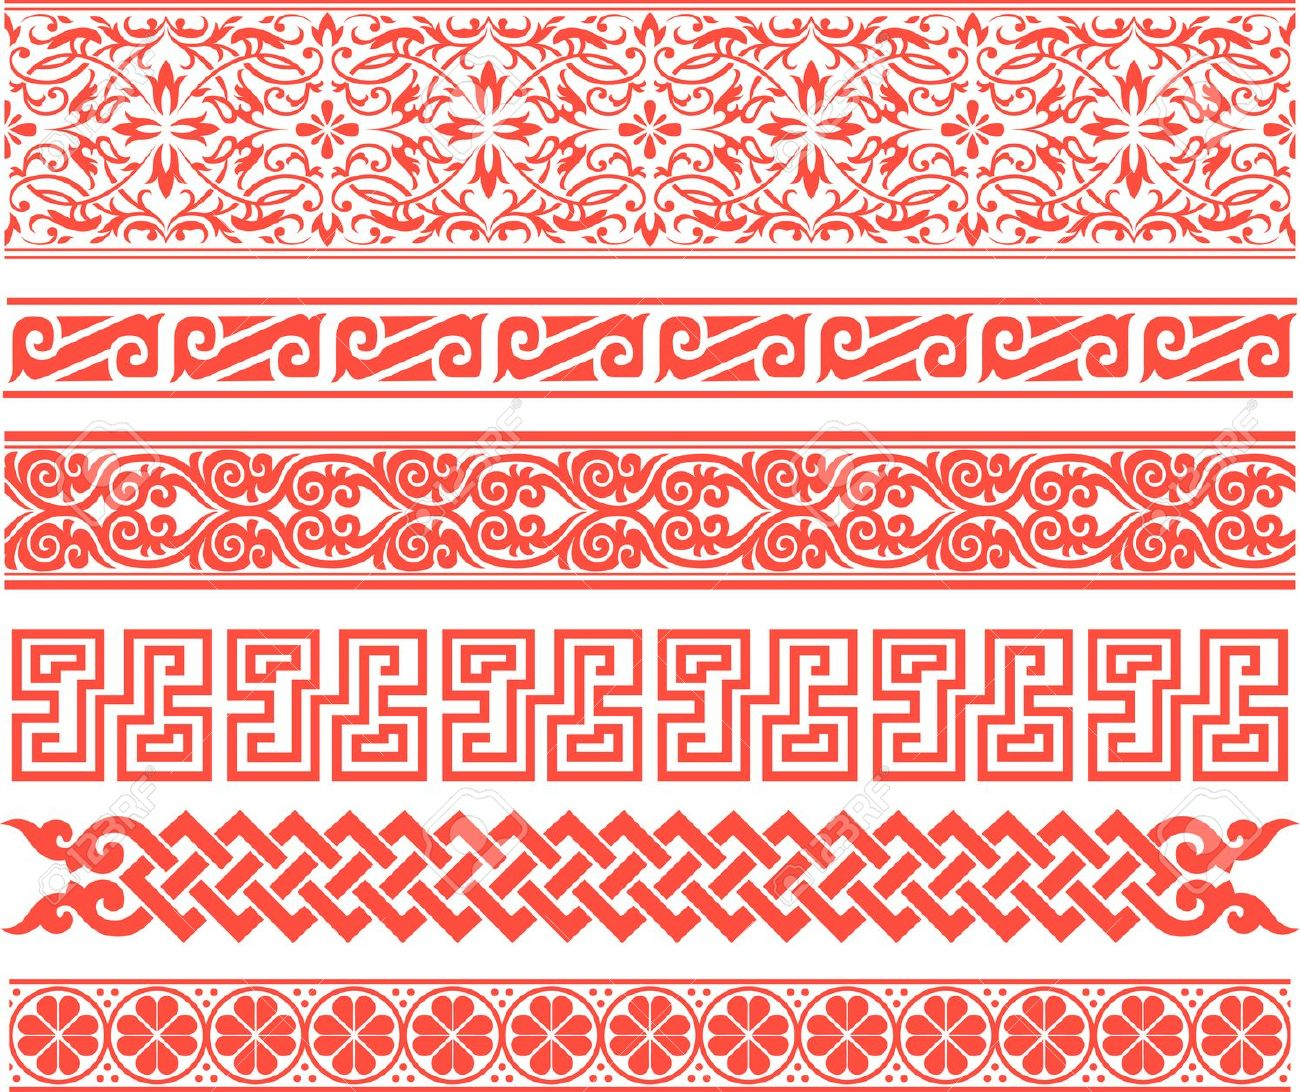 Free Chinese Cliparts Border, Download Free Clip Art, Free Clip Art.